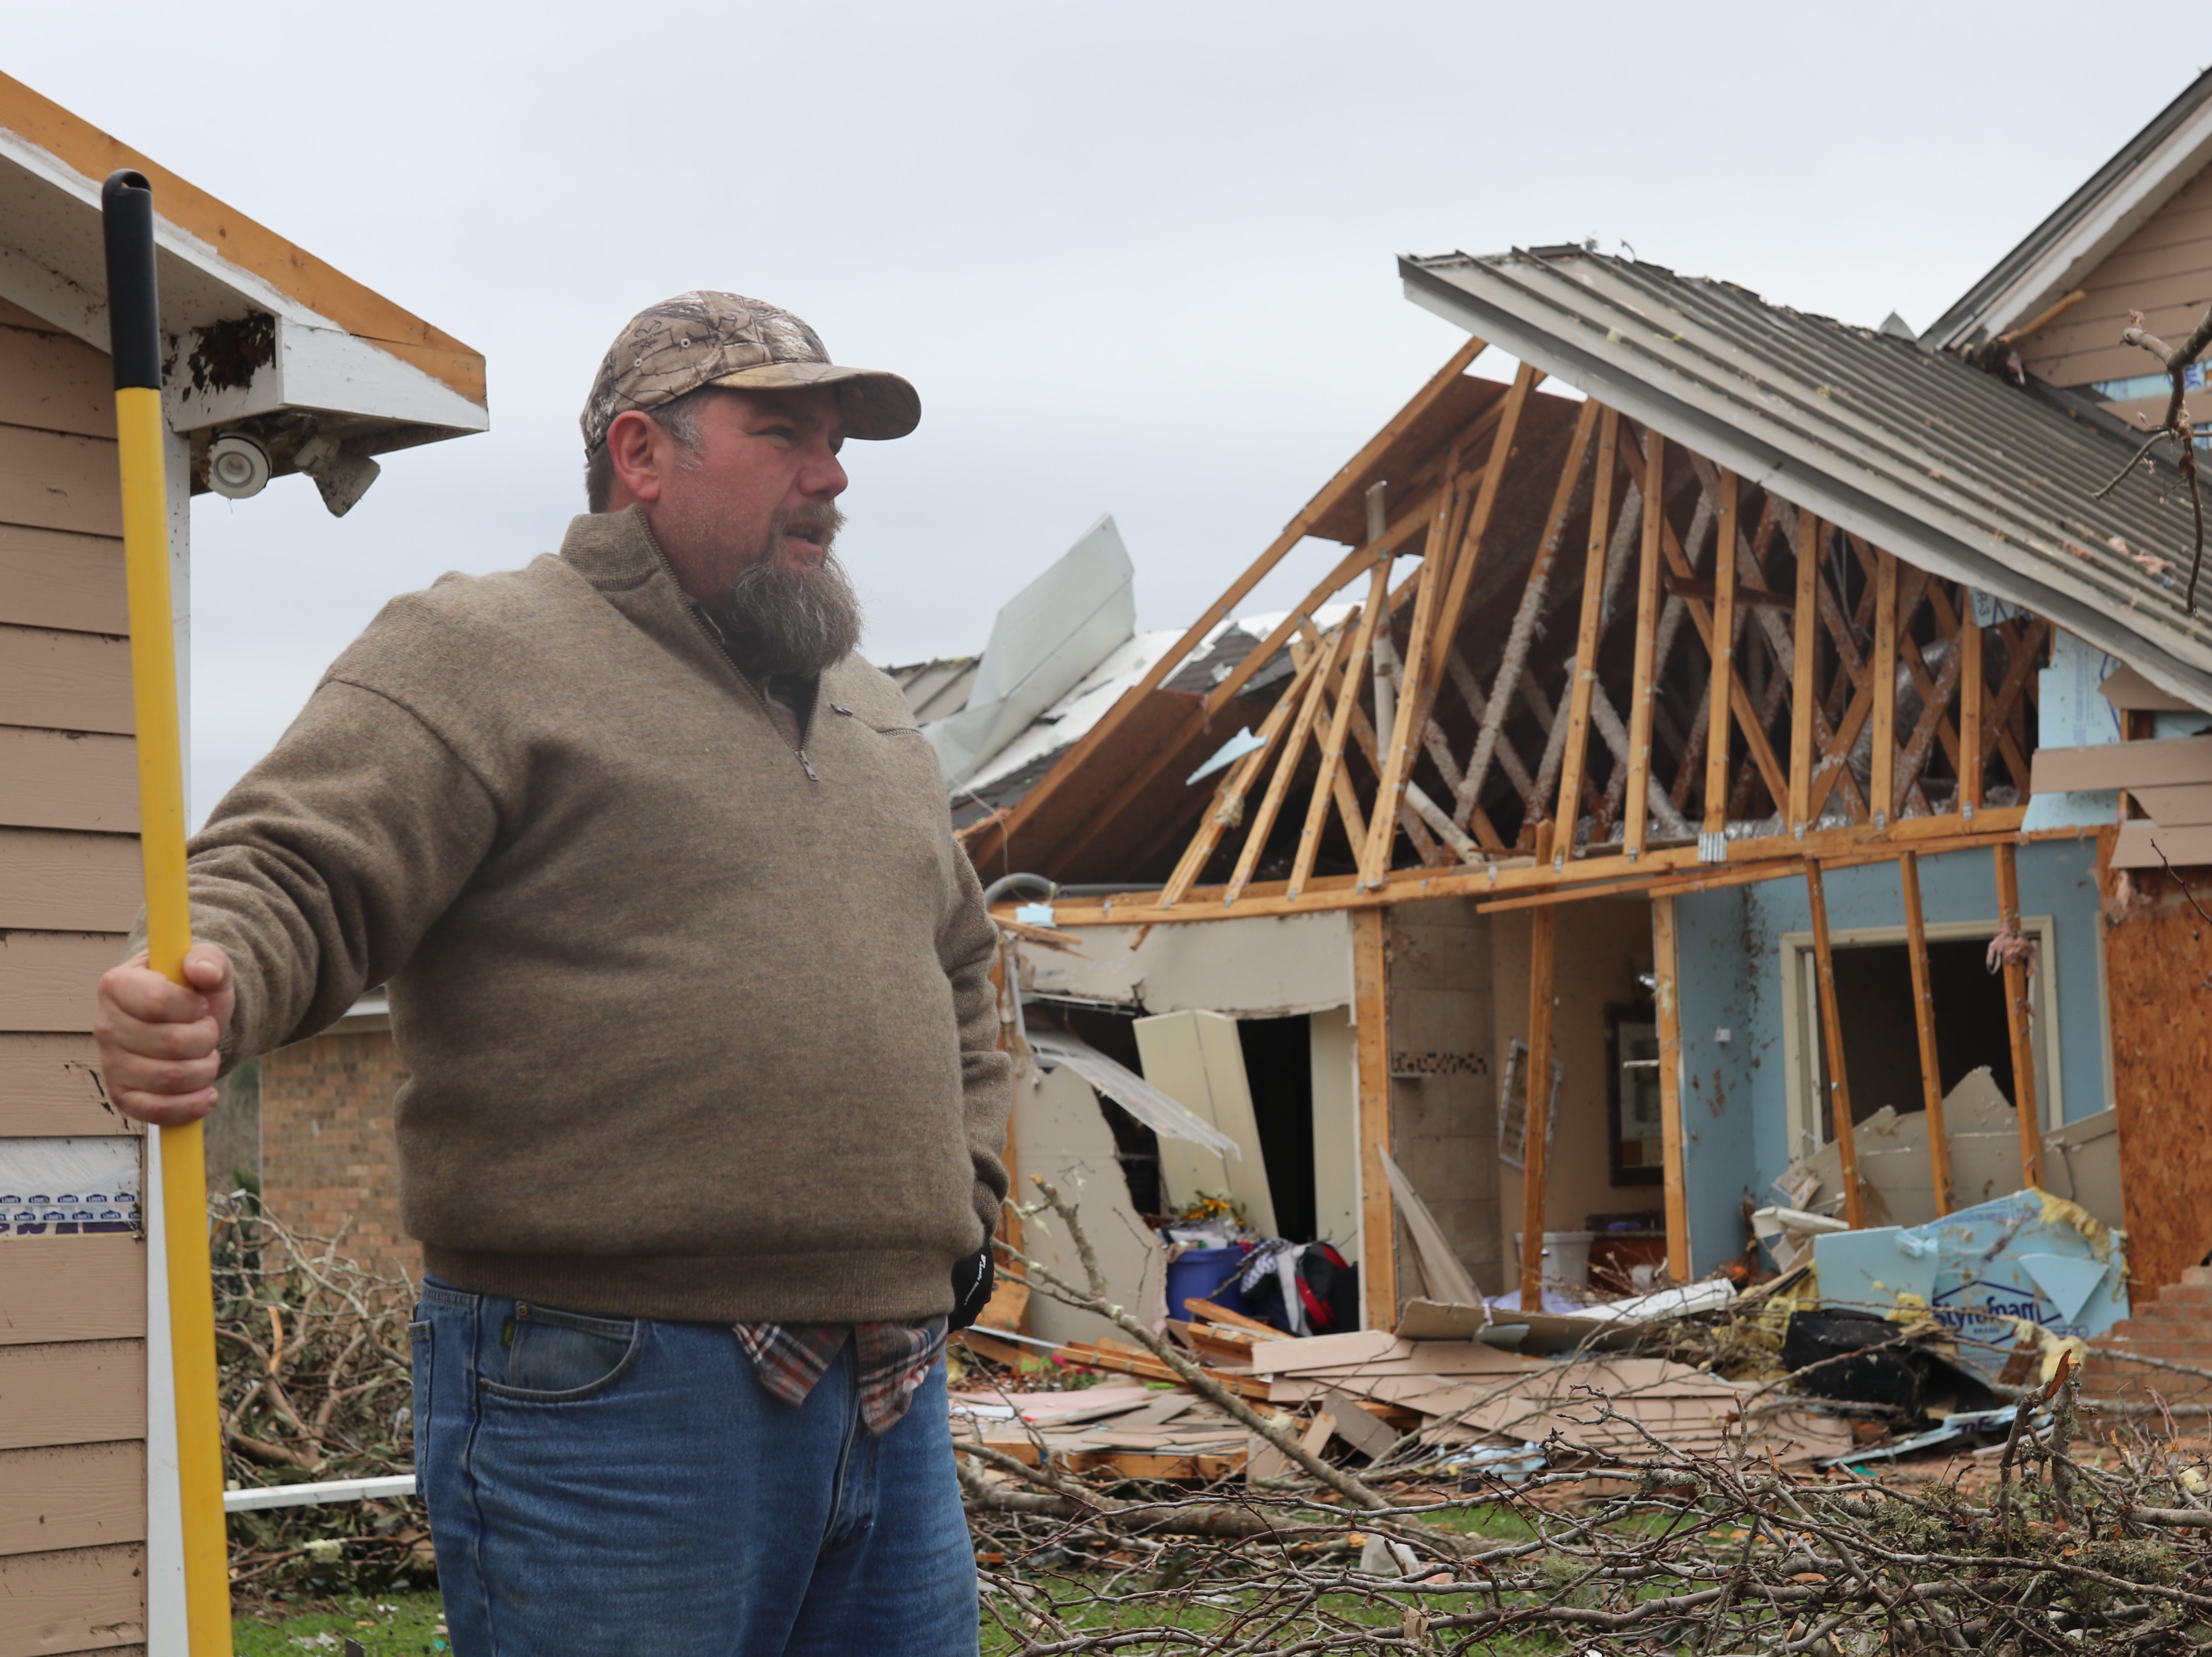 David Byler works to cleanup debris around his home which was severely damaged by a tornado Sunday March 3.